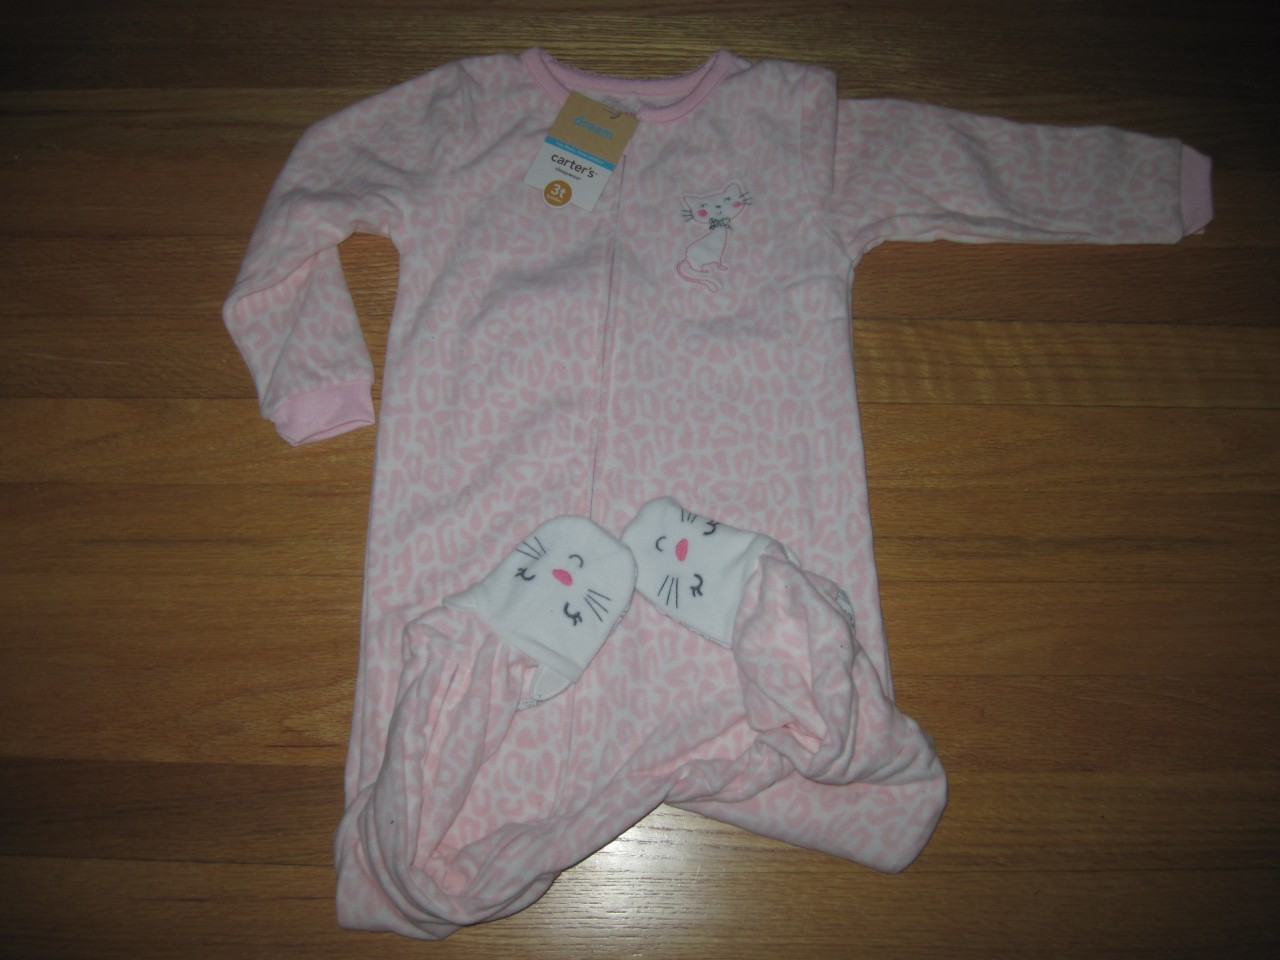 789a9ddf8b66 I Found It On eBay  CARTER S BLANKET SLEEPER SLEEPWEAR FOR TODDLER ...